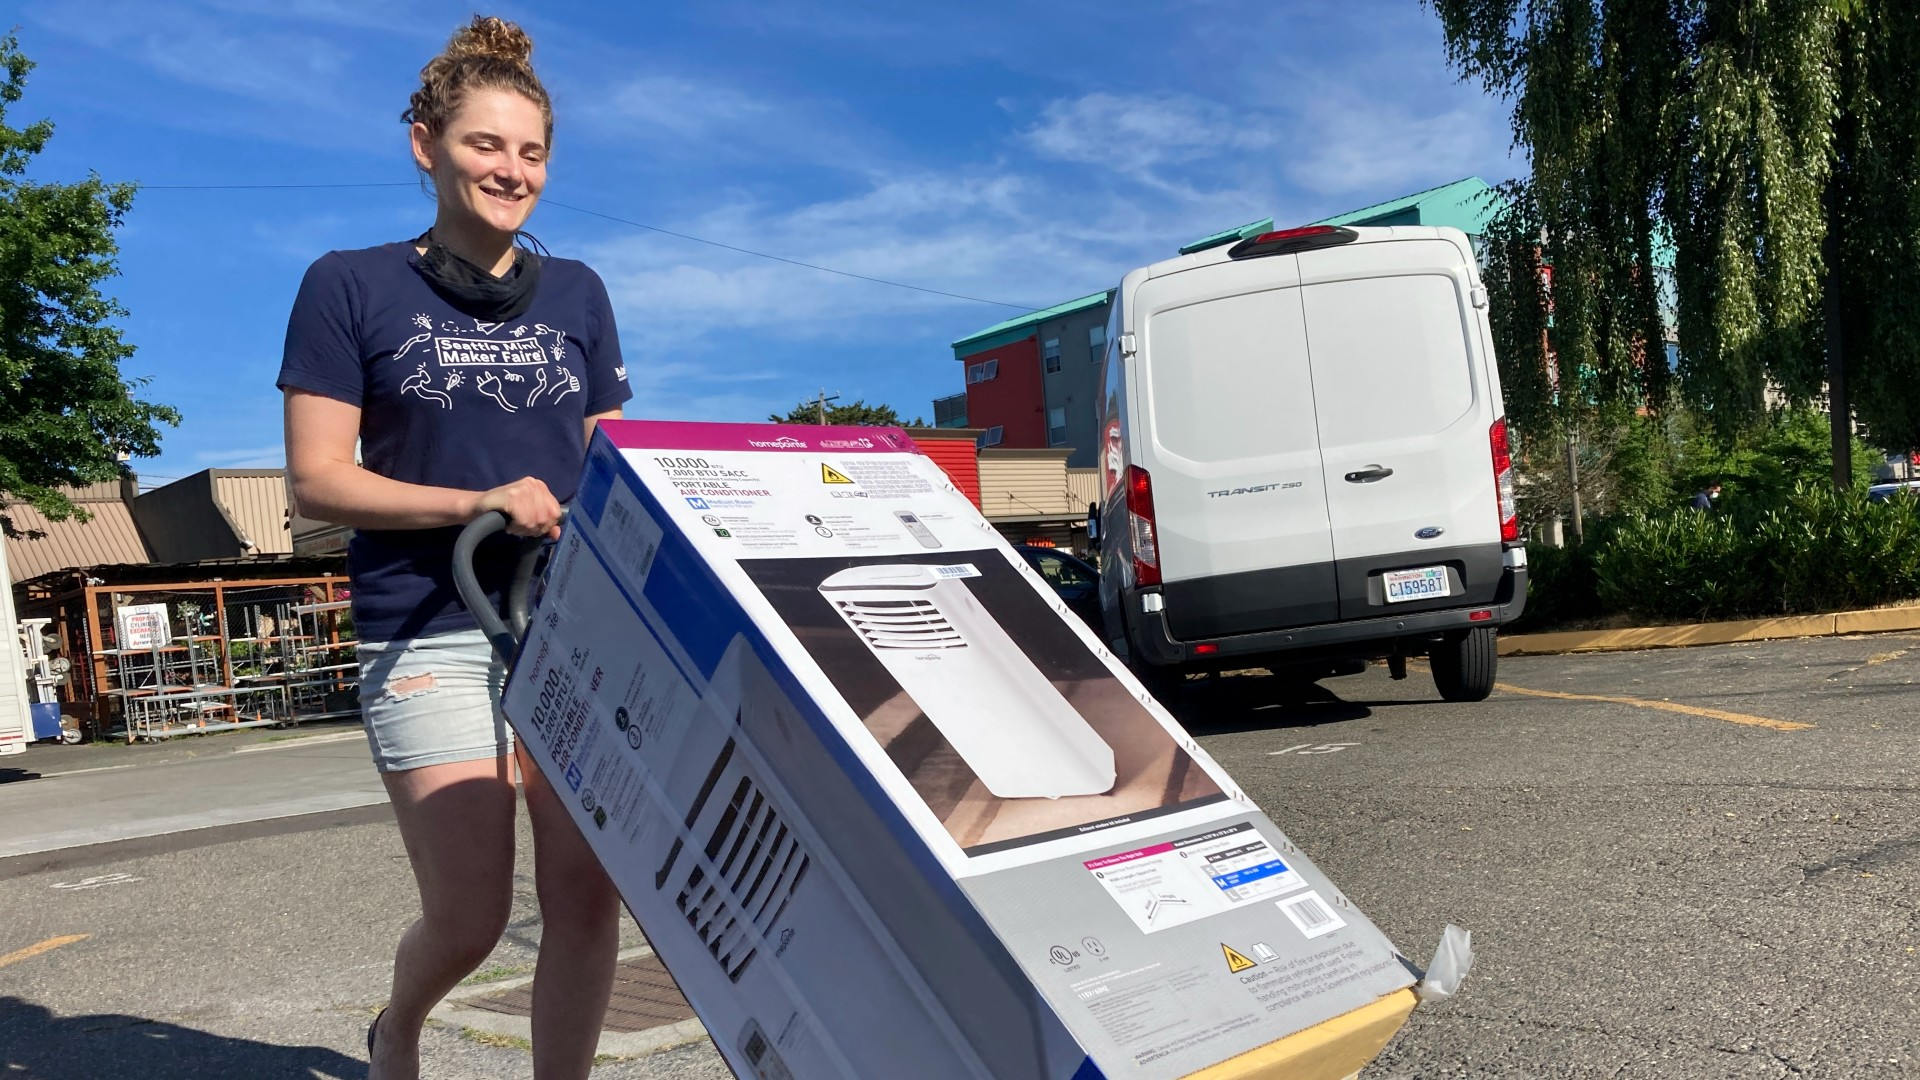 Sarah O'Sell transports her new air conditioning unit to her nearby apartment on a dolly in Seattle on Friday, June 25, 2021. (AP Photo/Manuel Valdes)